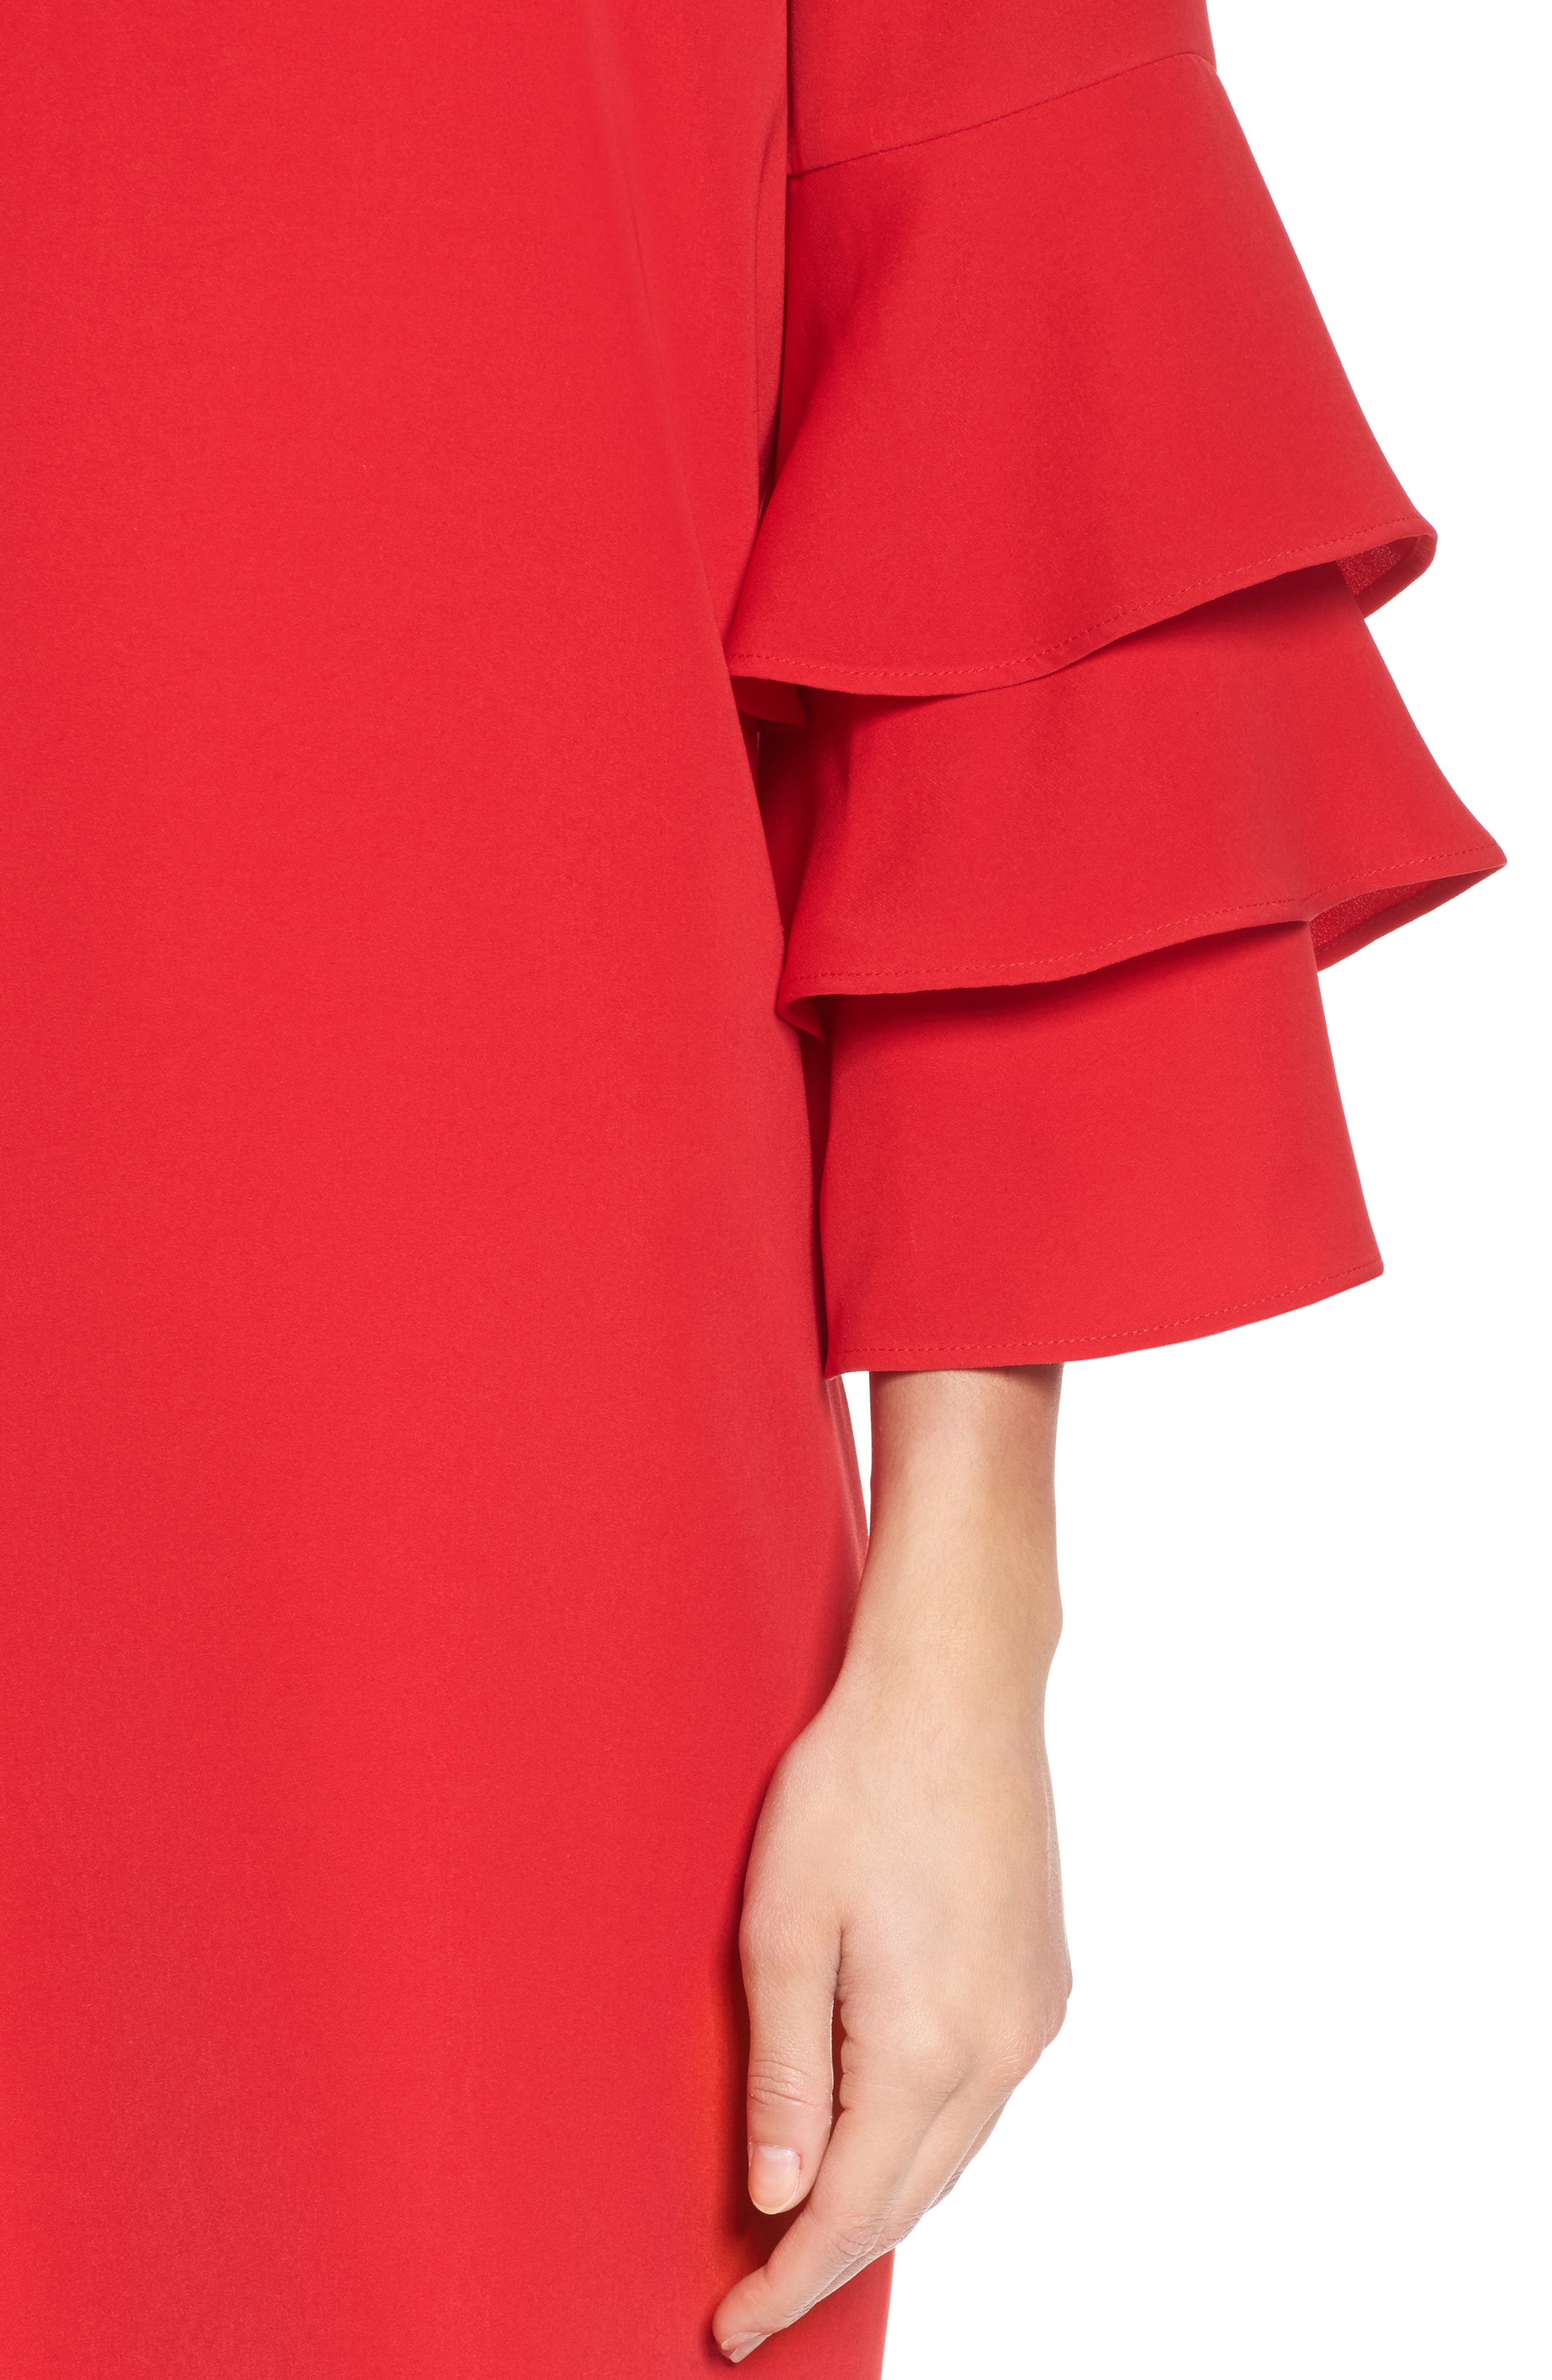 Ruffle Sleeve Shift Dress,                             Alternate thumbnail 4, color,                             Red Mars